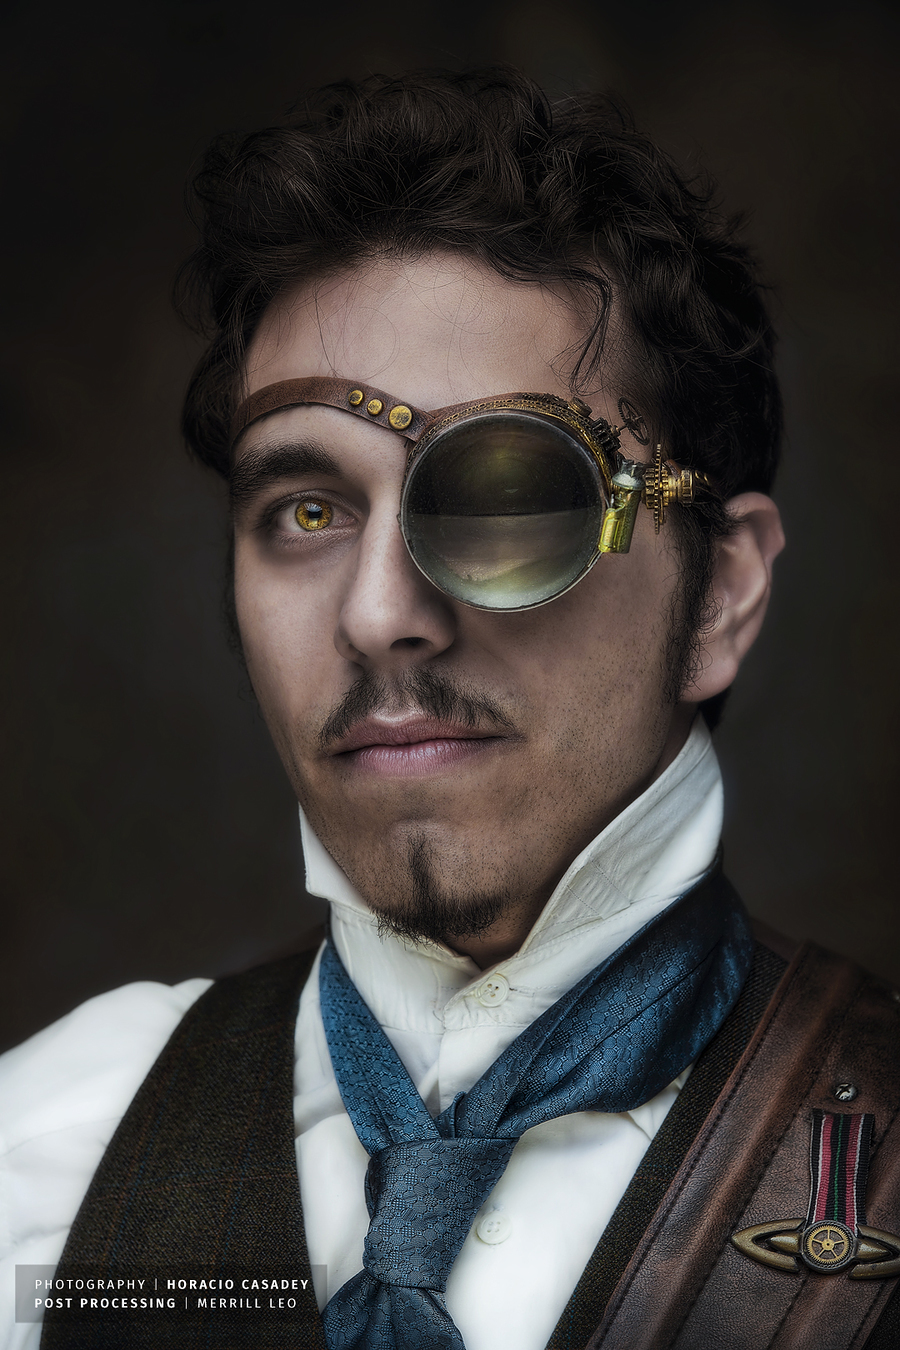 Steam Punk Retouch for Horacio Casadey / Post processing by Lightweavers / Uploaded 18th March 2015 @ 09:57 PM